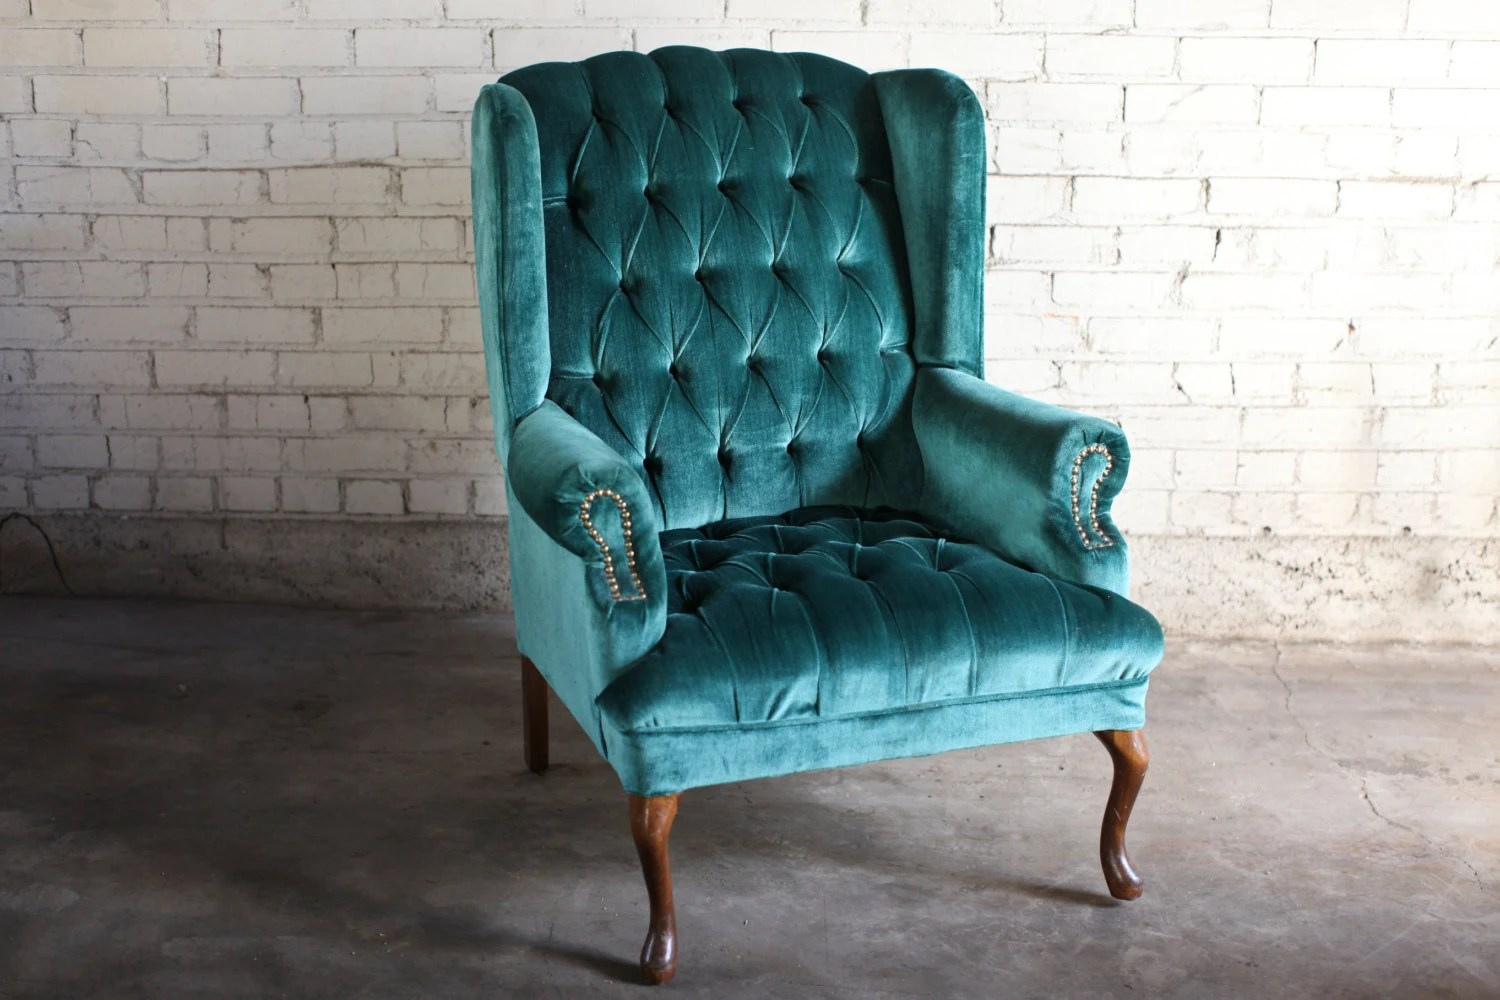 Teal Rocking Chair Teal Green Velvet Tufted Wingback Chair